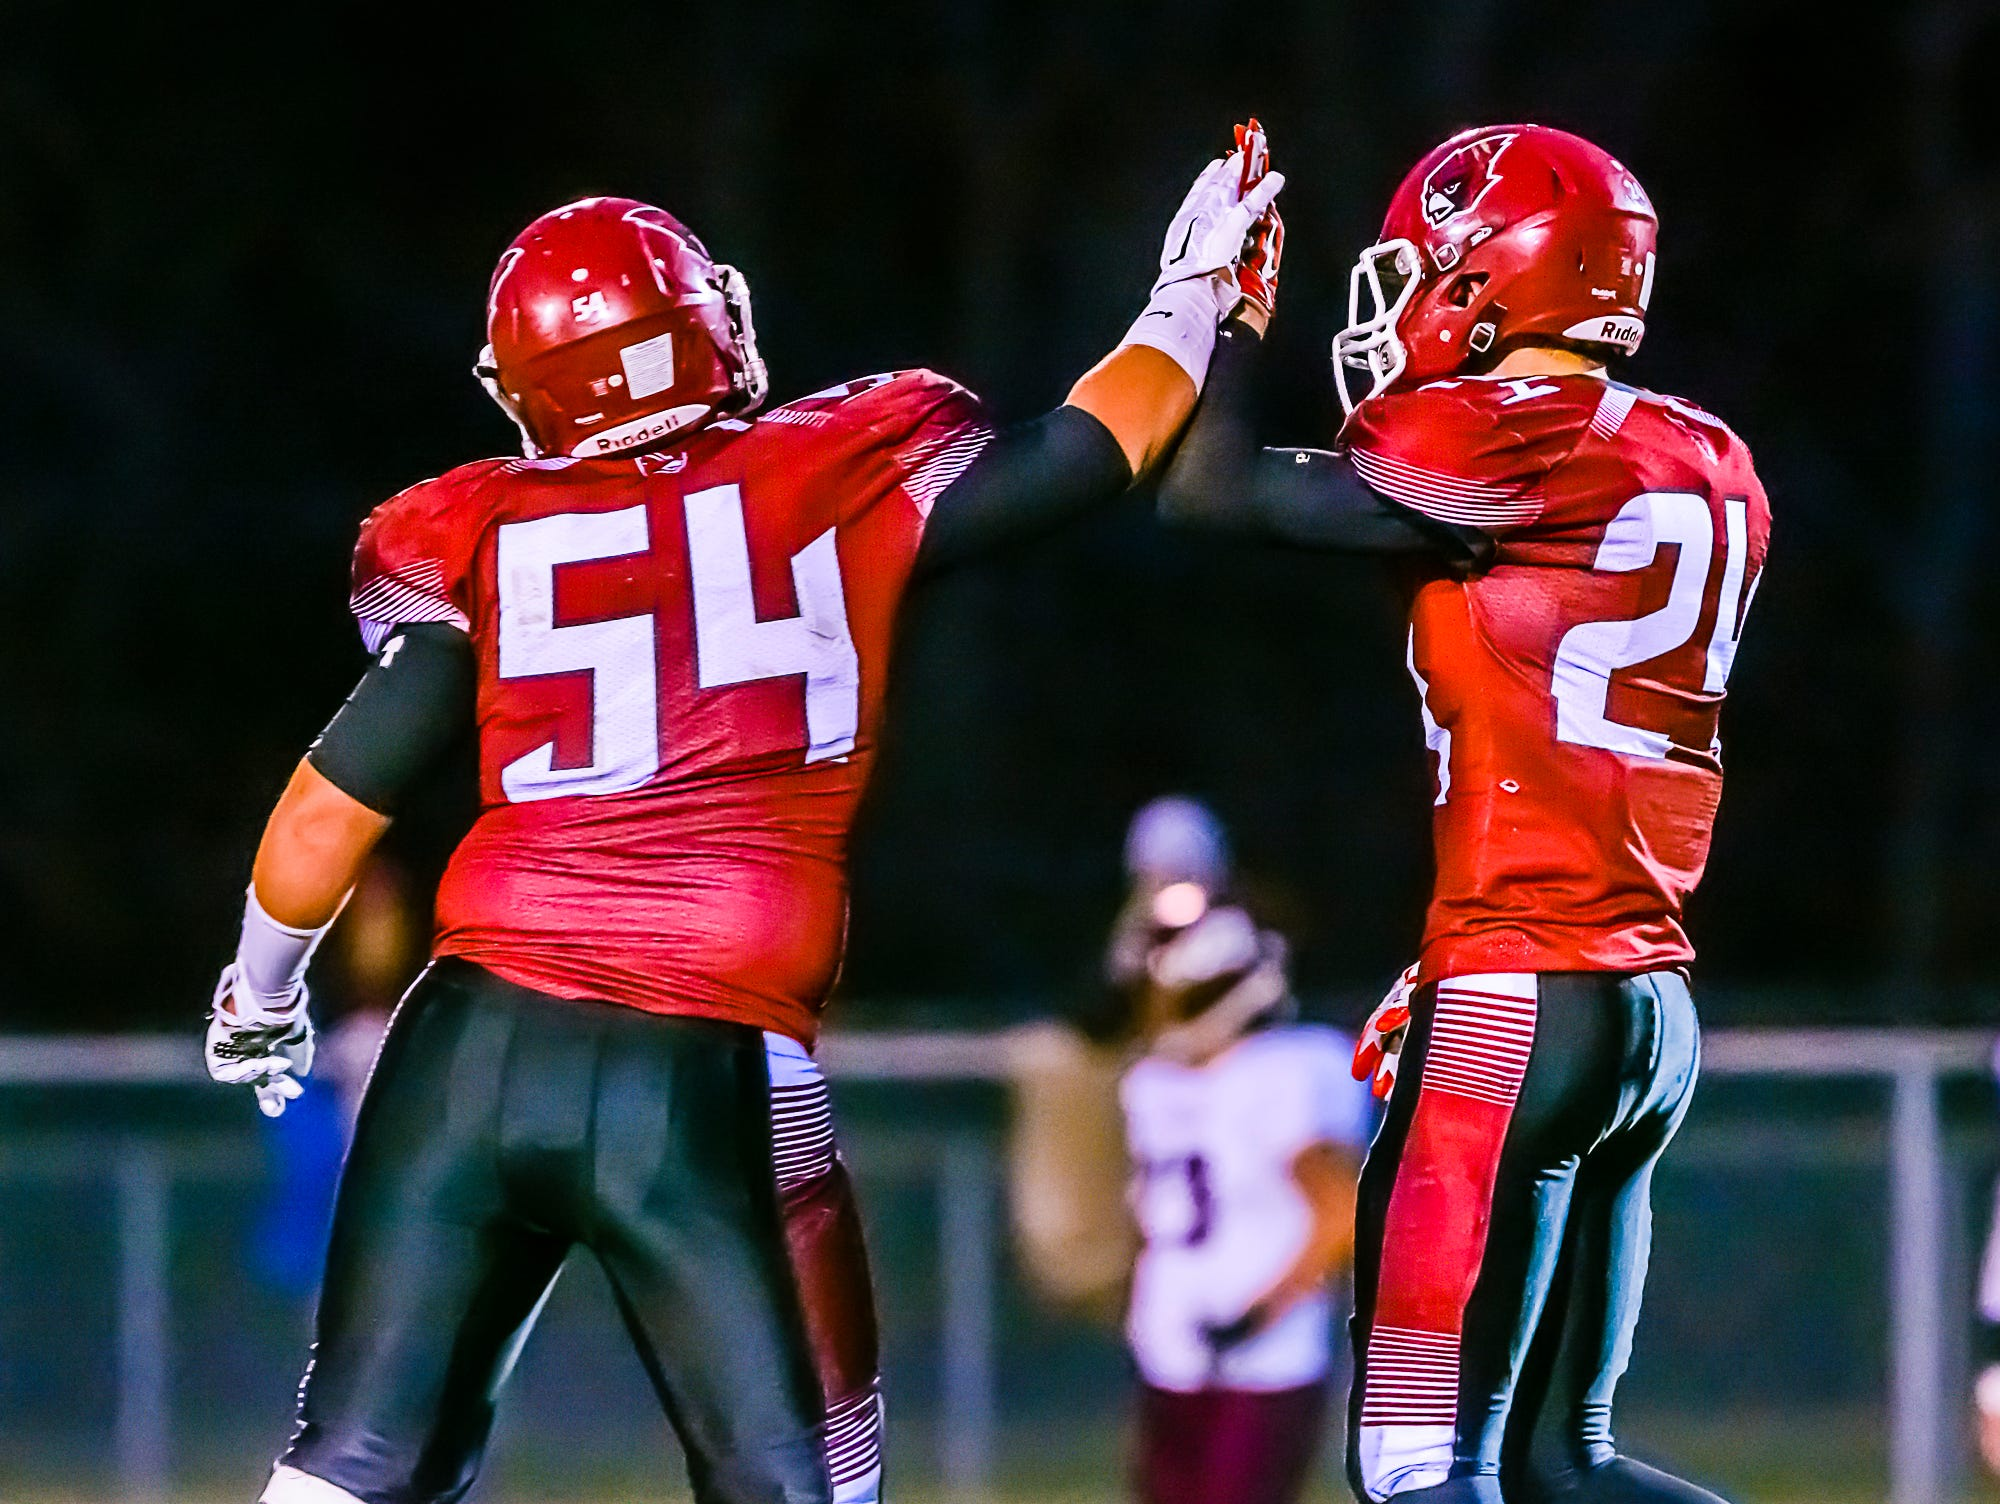 Portland defenders Dylan Goodman ,54, and Treyvin Groesser ,right, high five after bringing down a Portland runner for a loss during their game Friday.